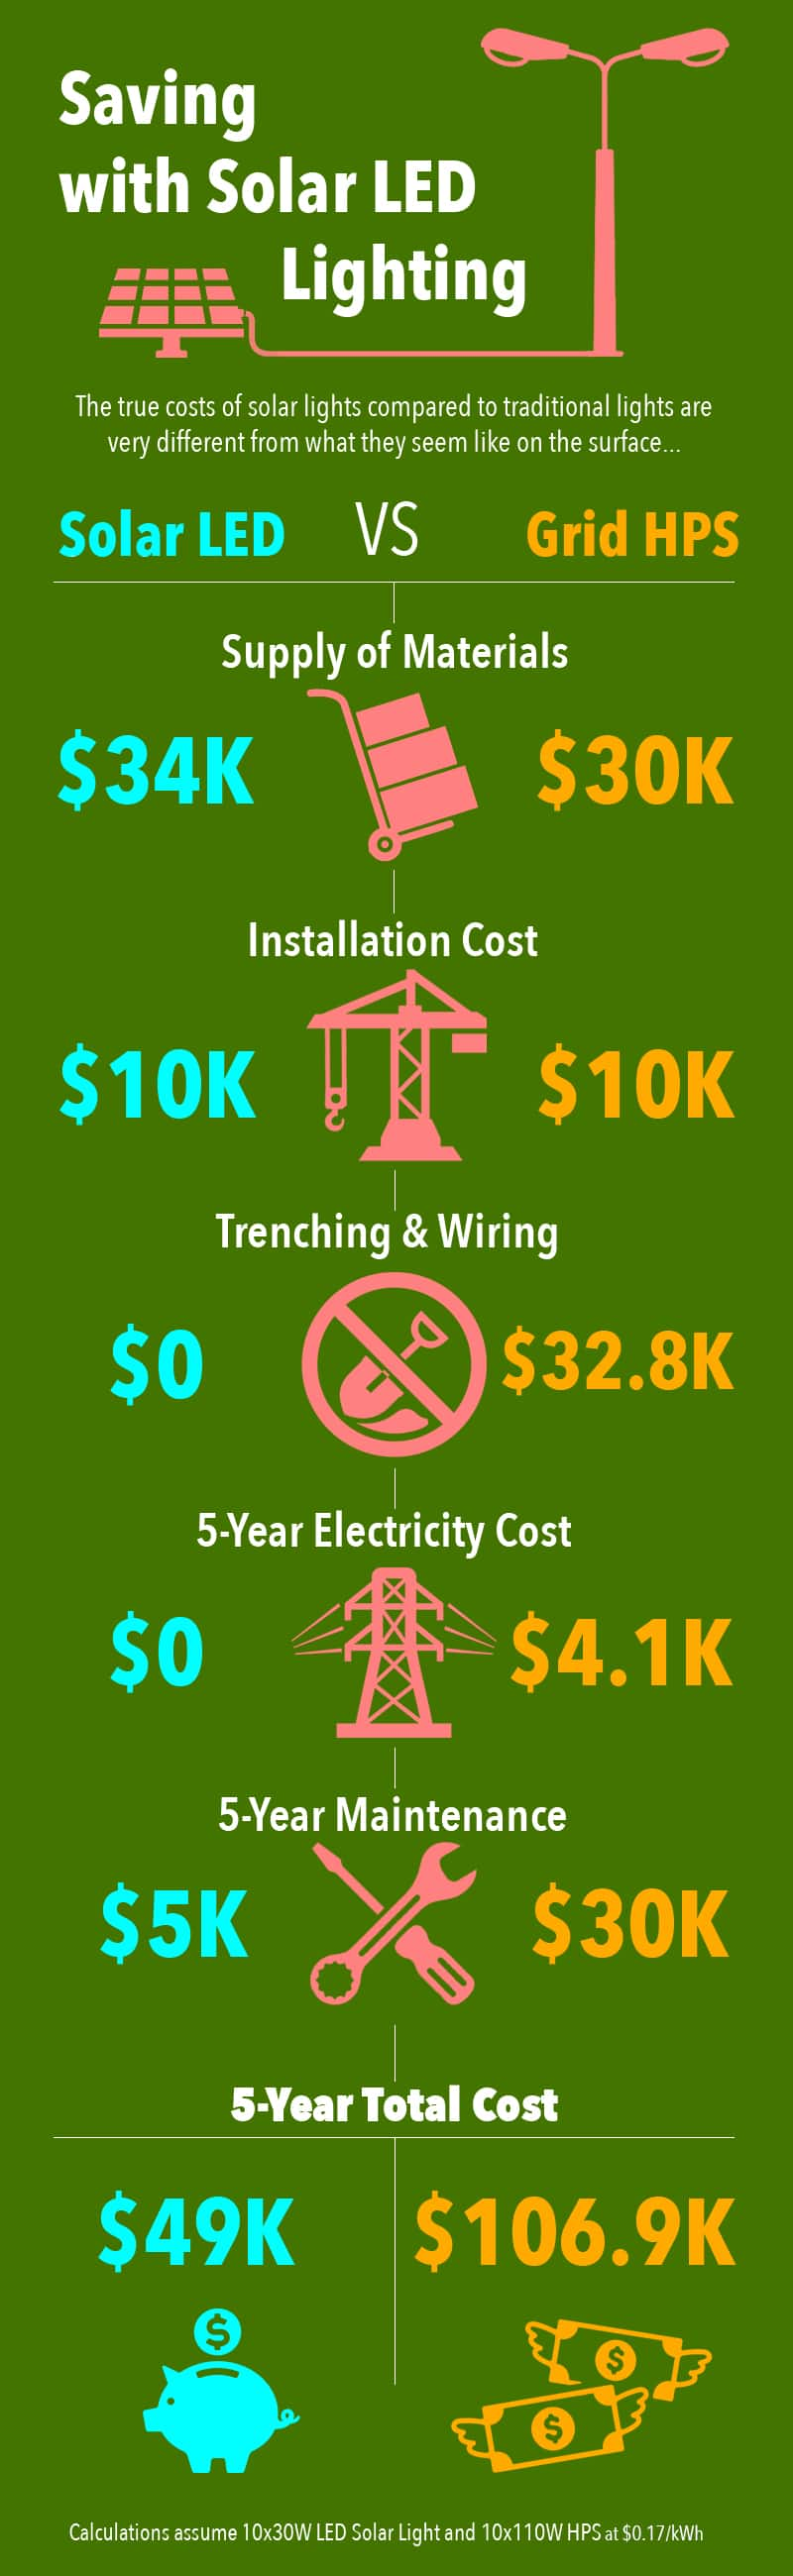 image - The Many Benefits of Solar Street Lights - An Infographic